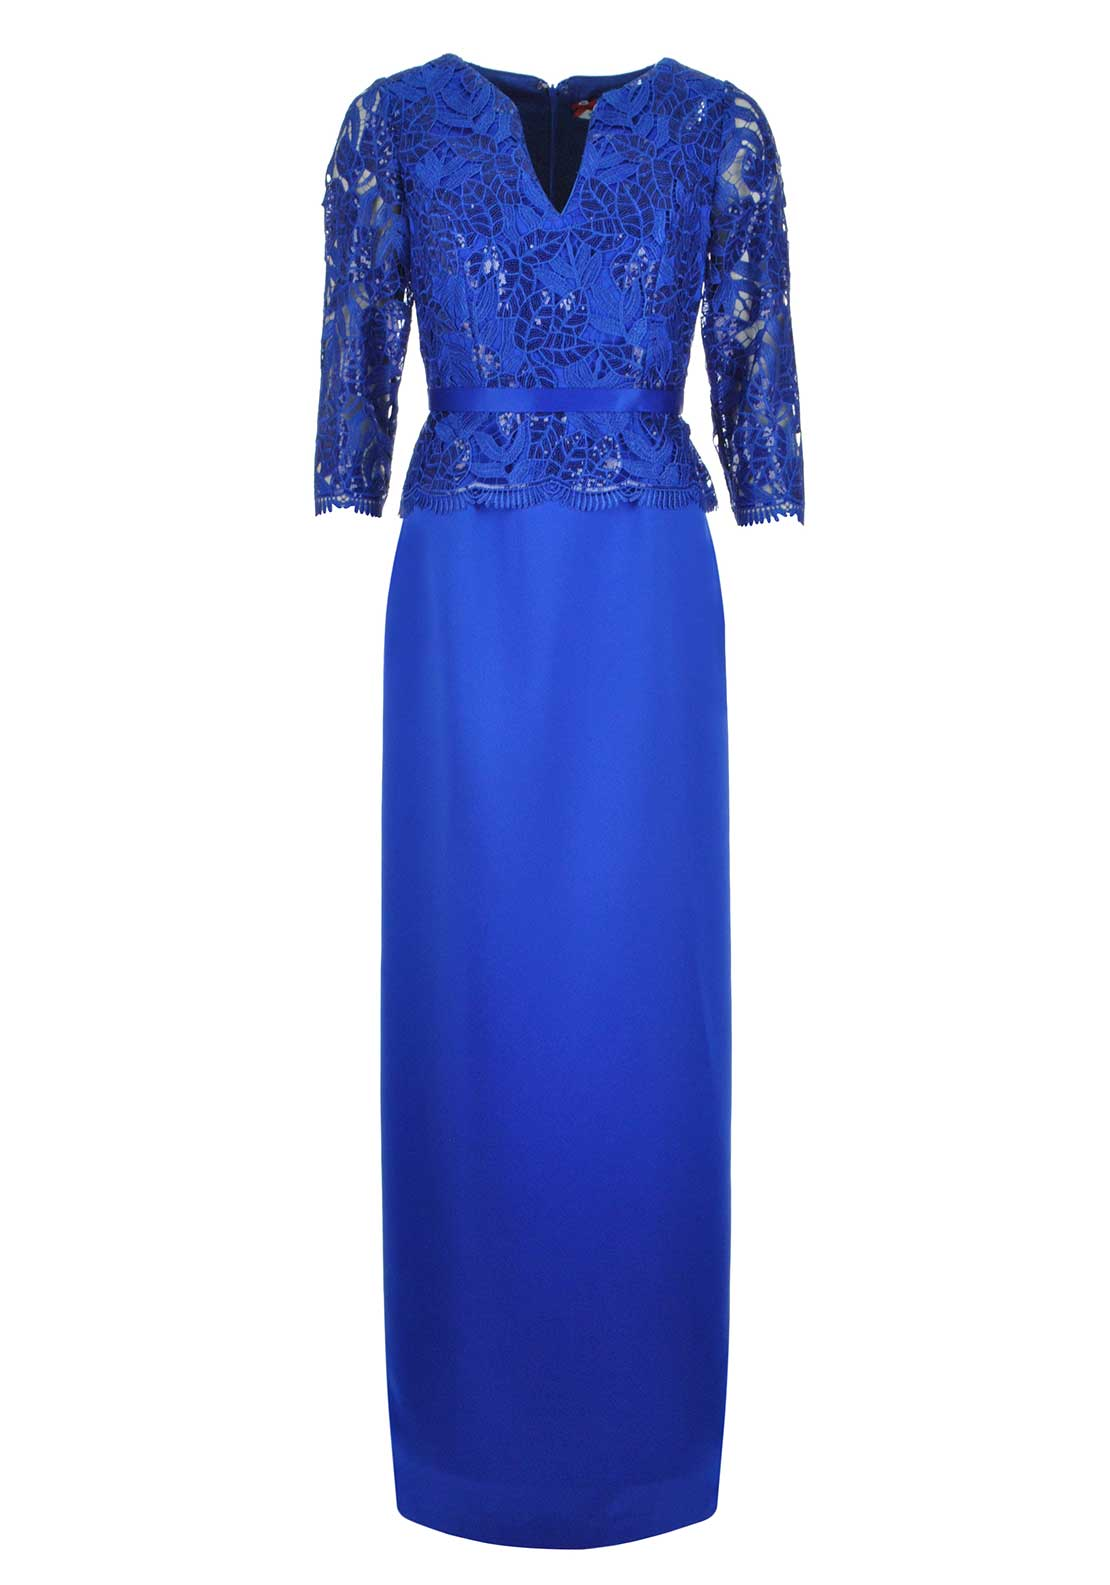 Sonia Pena Sequin Embellished Lace Overlay Full Length Dress, Royal Blue